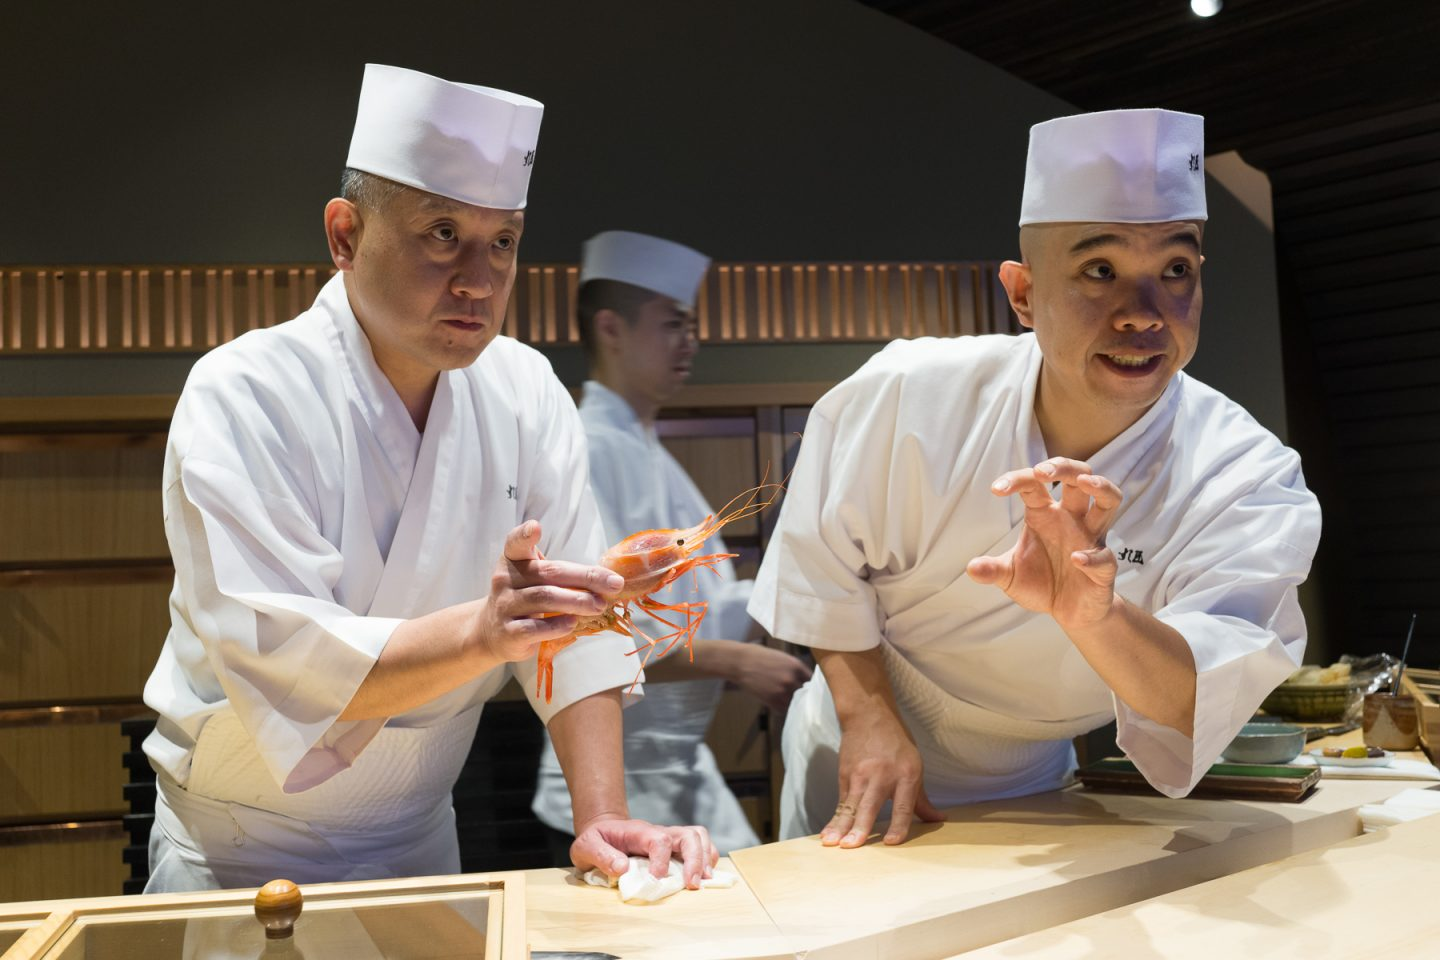 Chefs at the sushi bar of Sushi Sho.